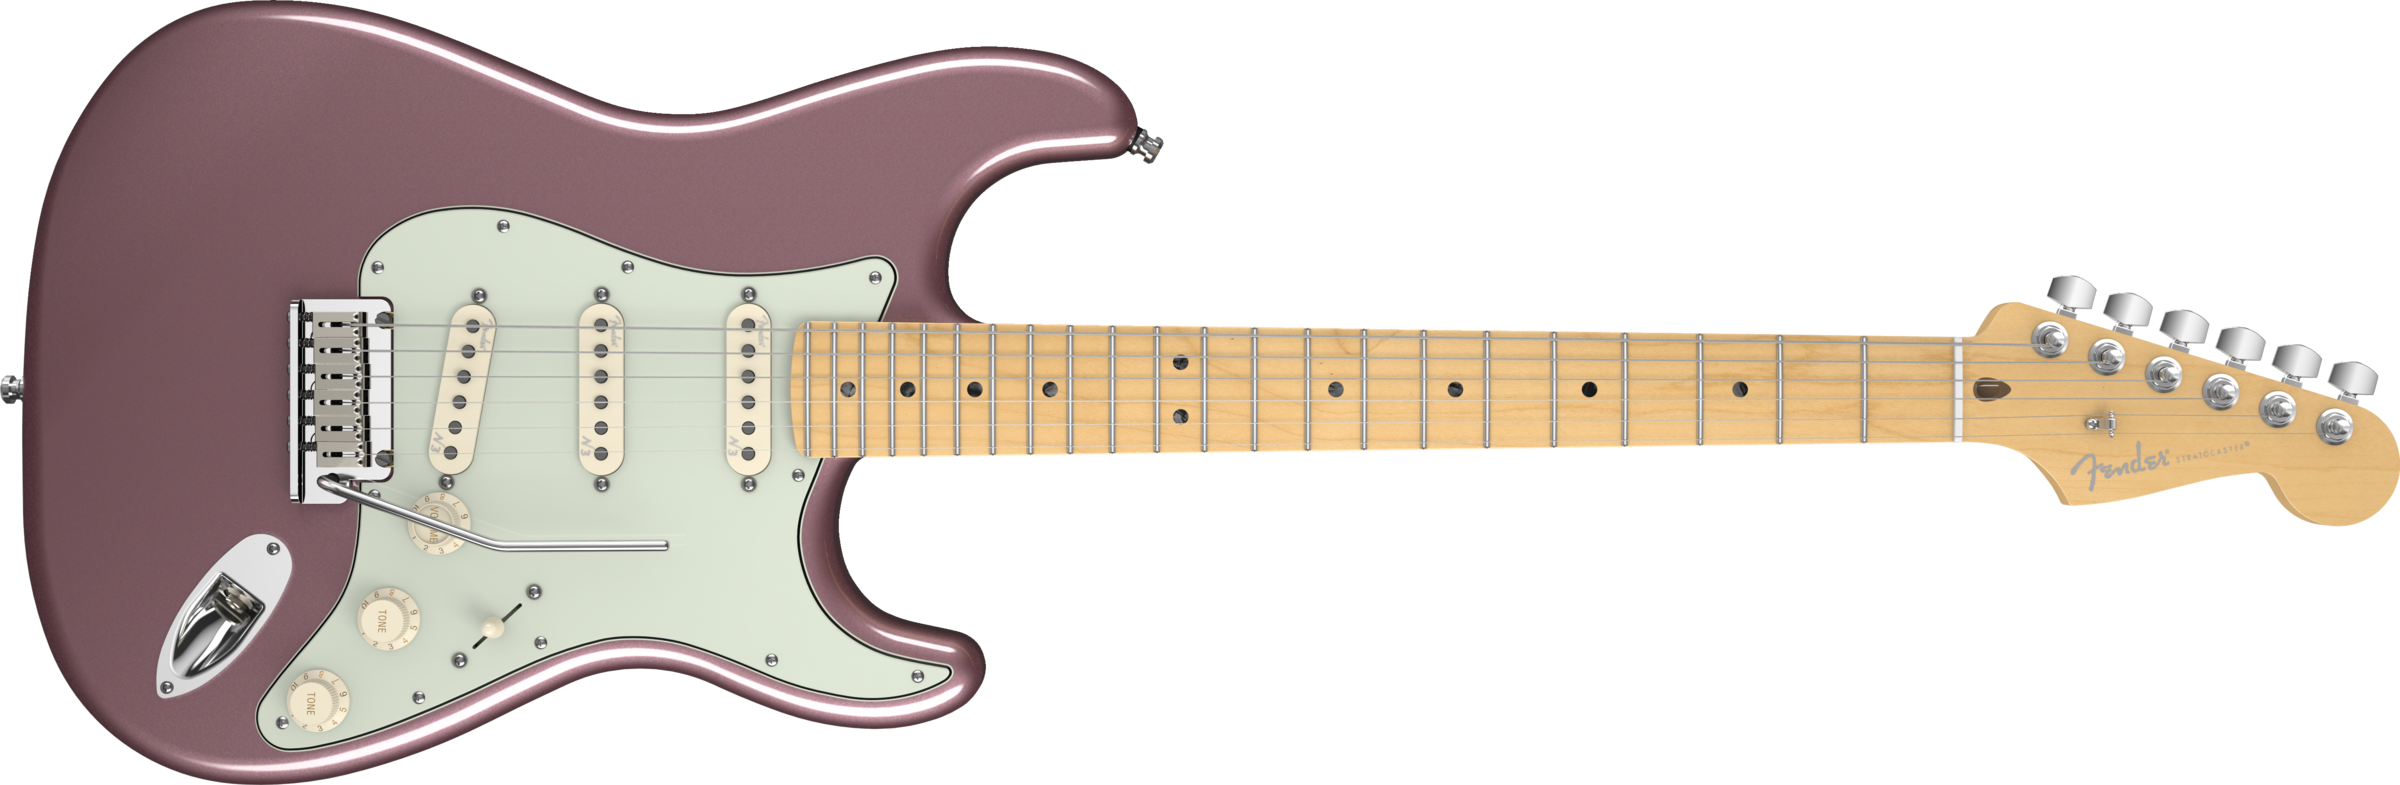 Clipart guitar handle. Fender forums view topic